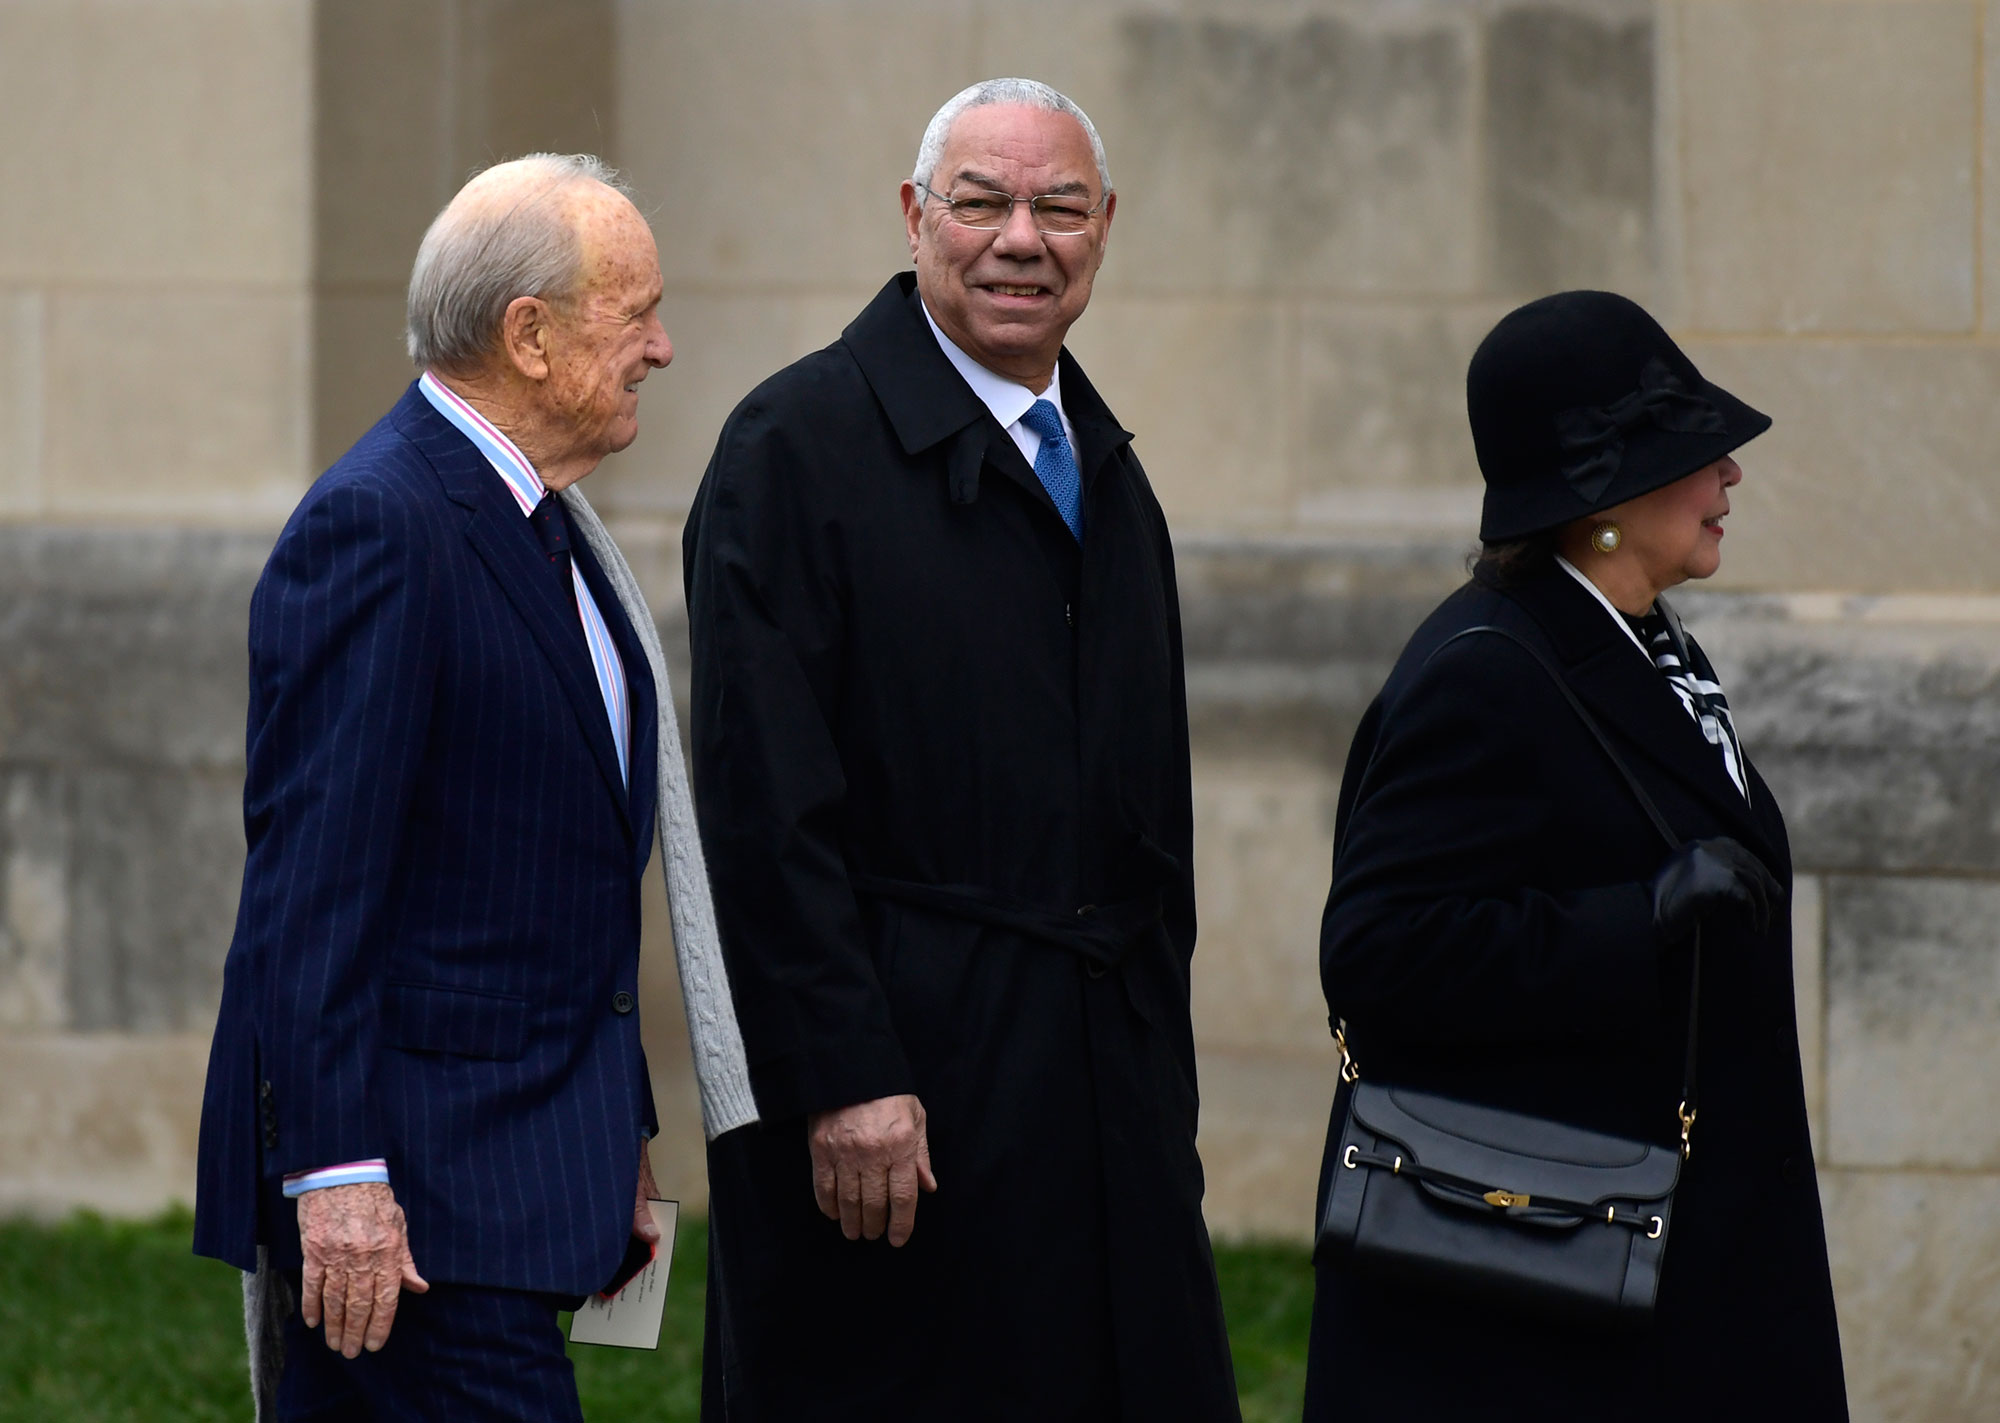 "<div class=""meta image-caption""><div class=""origin-logo origin-image none""><span>none</span></div><span class=""caption-text"">Former Secretary of State Colin Powell, center, arrives for the State Funeral of former President George H.W. Bush at the National Cathedral in Washington, Wednesday, Dec. 5, 2018. (Susan Walsh/AP Photo)</span></div>"